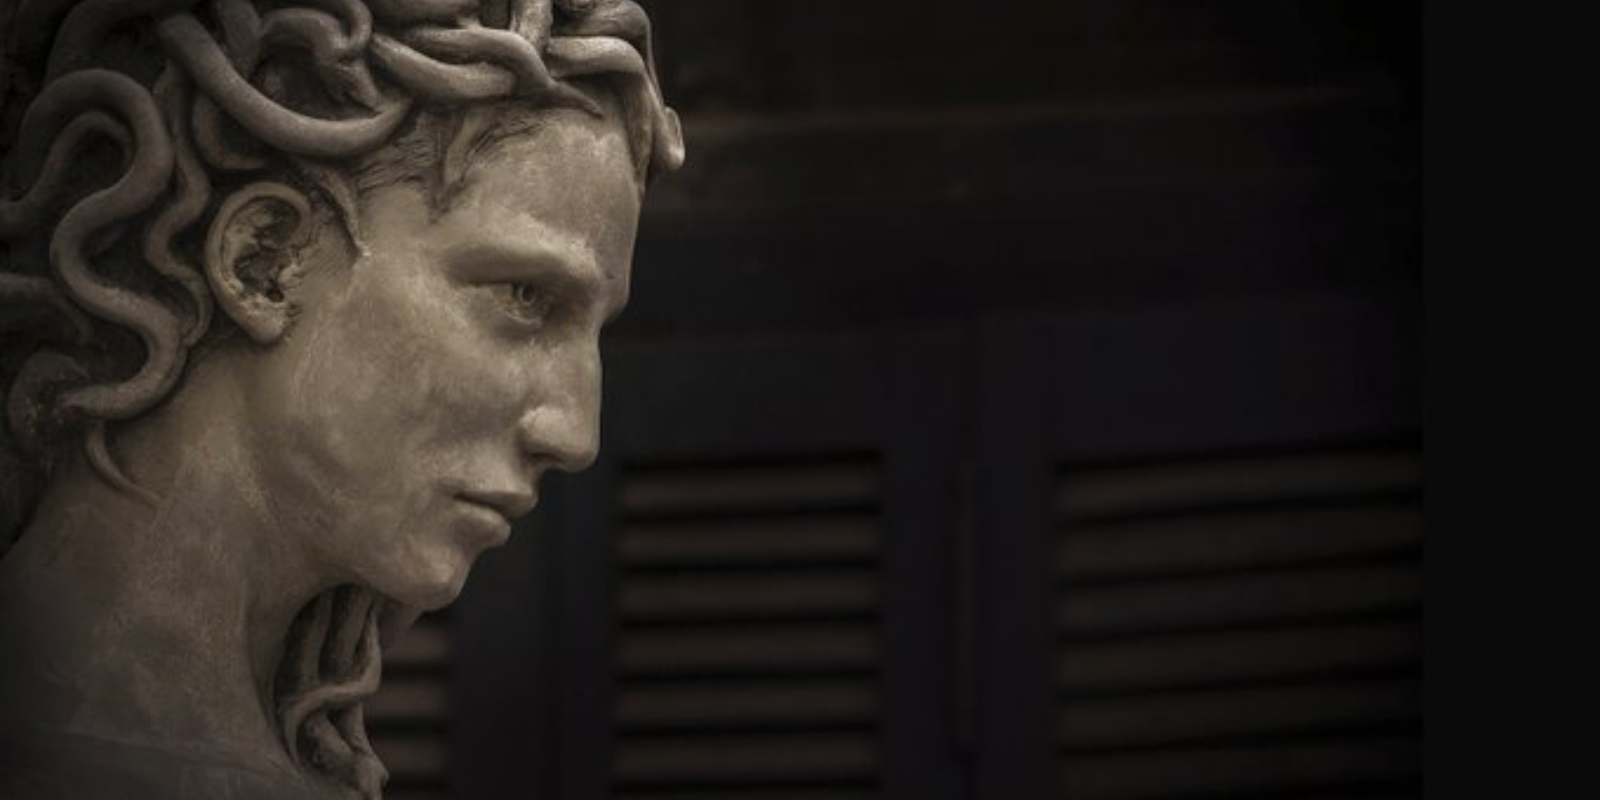 Mythologically illiterate #metoo Medusa statue to be unveiled in NYC